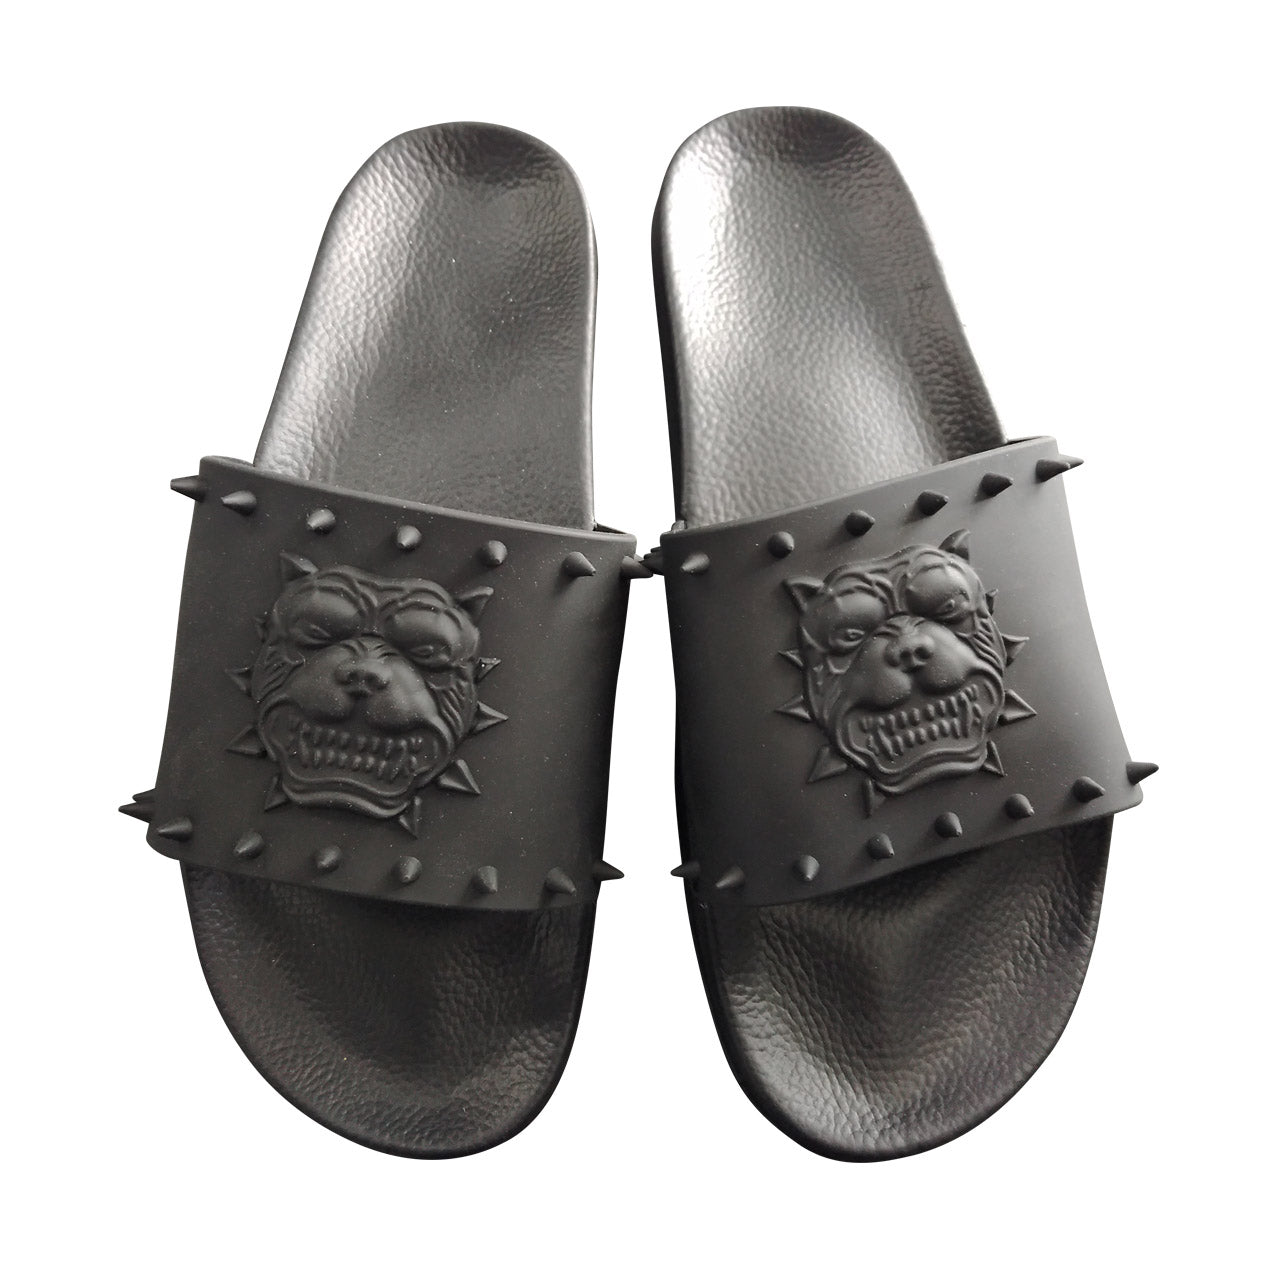 PITBULL GRAY WITH RUBBER SPIKE SLIDES